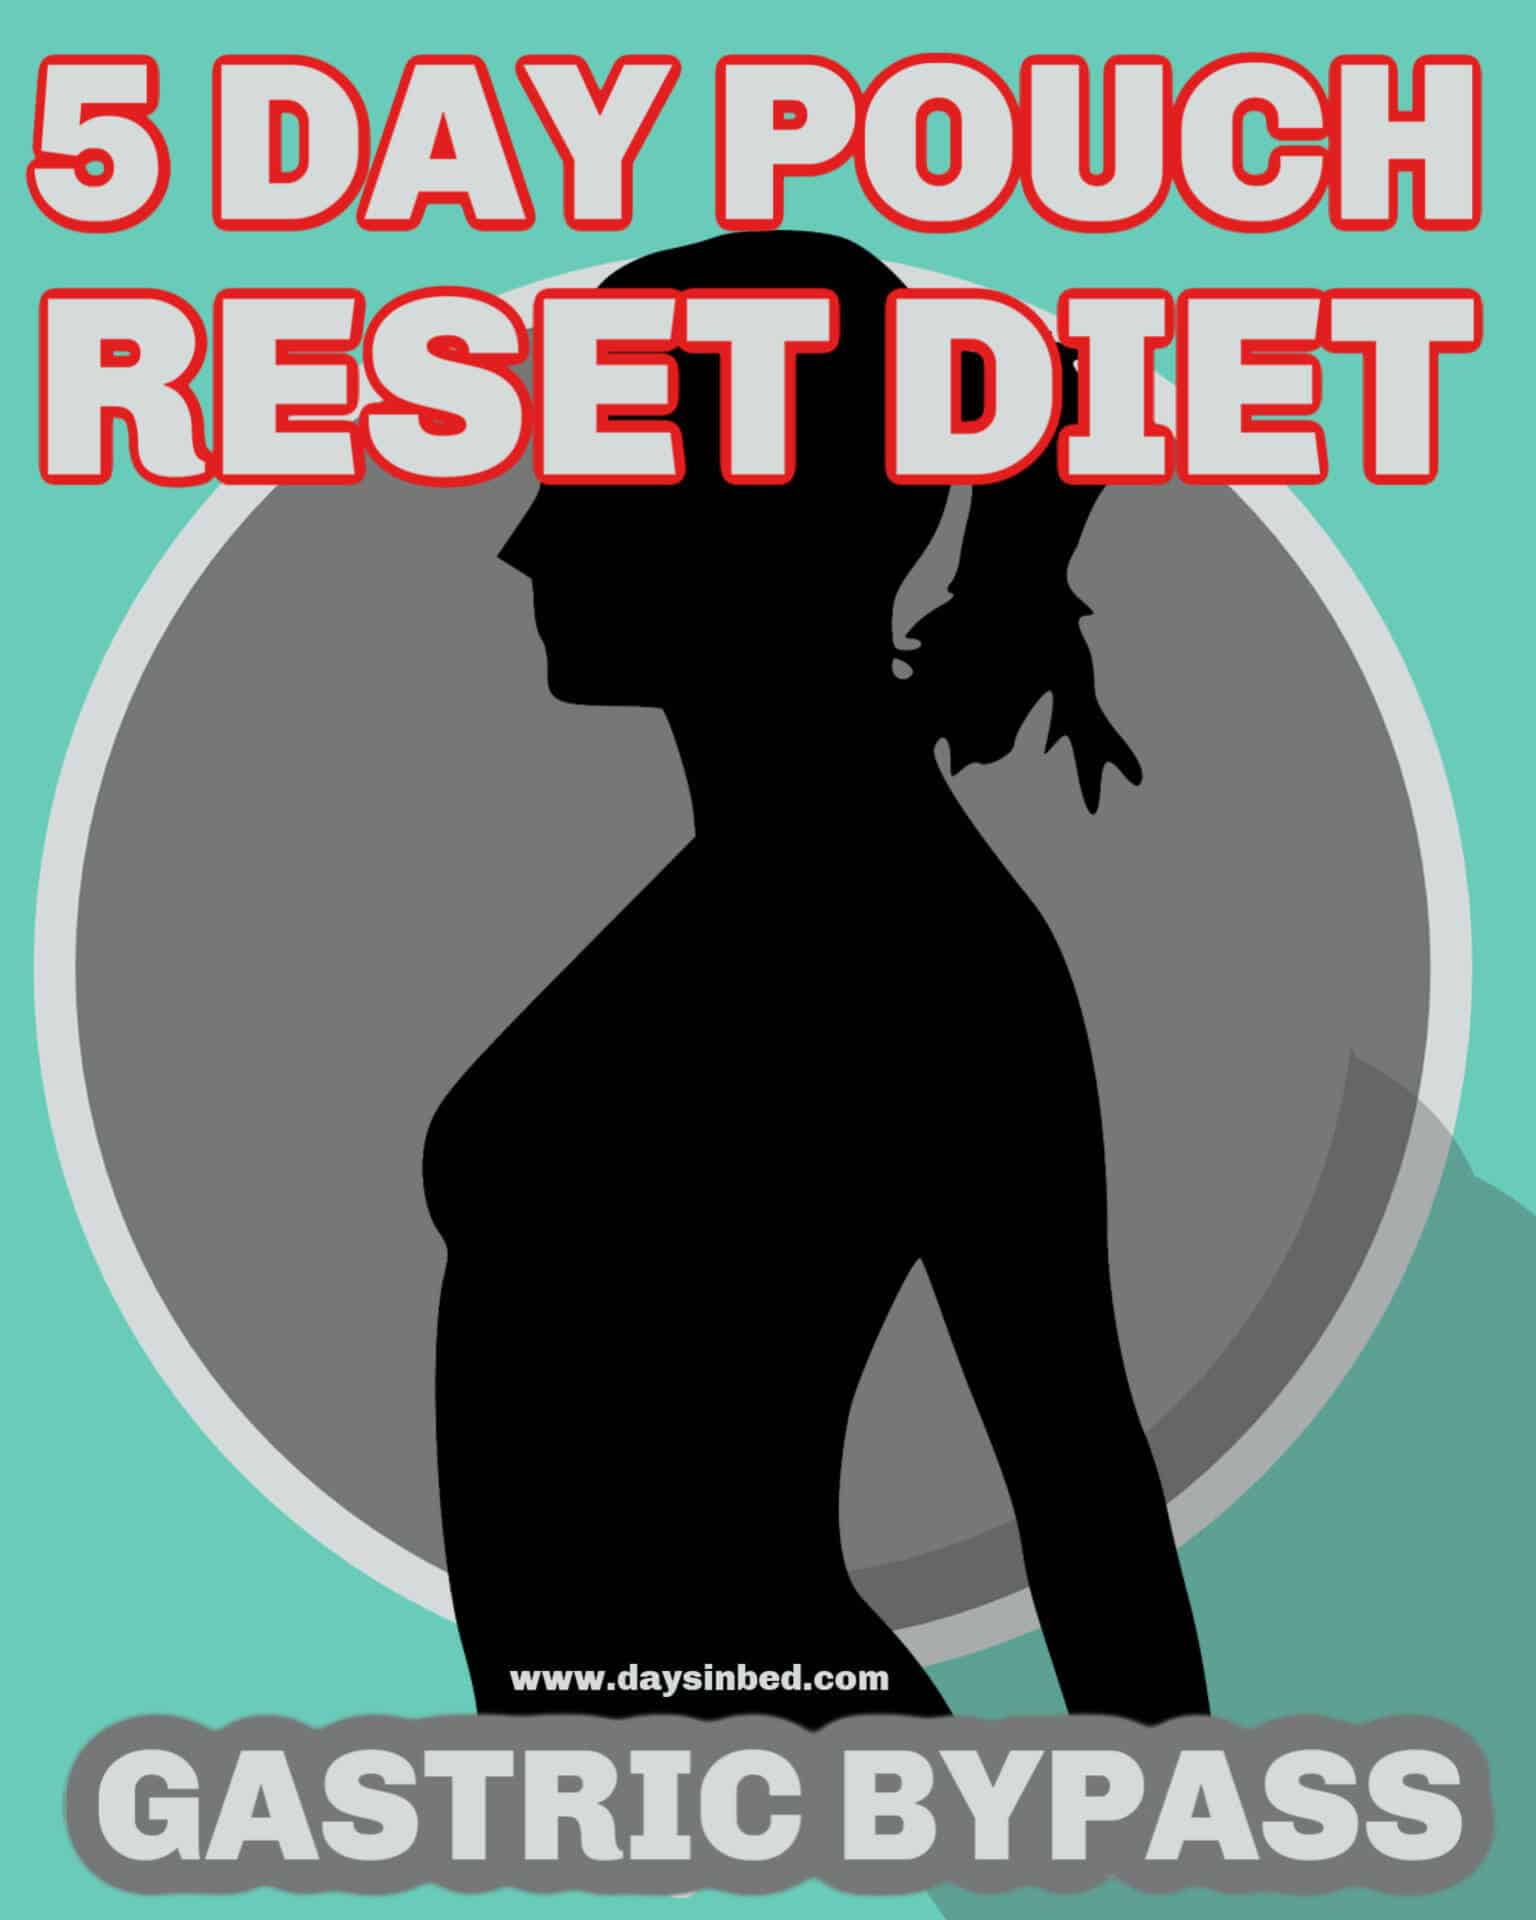 5 day pouch reset diet for gastric bypass